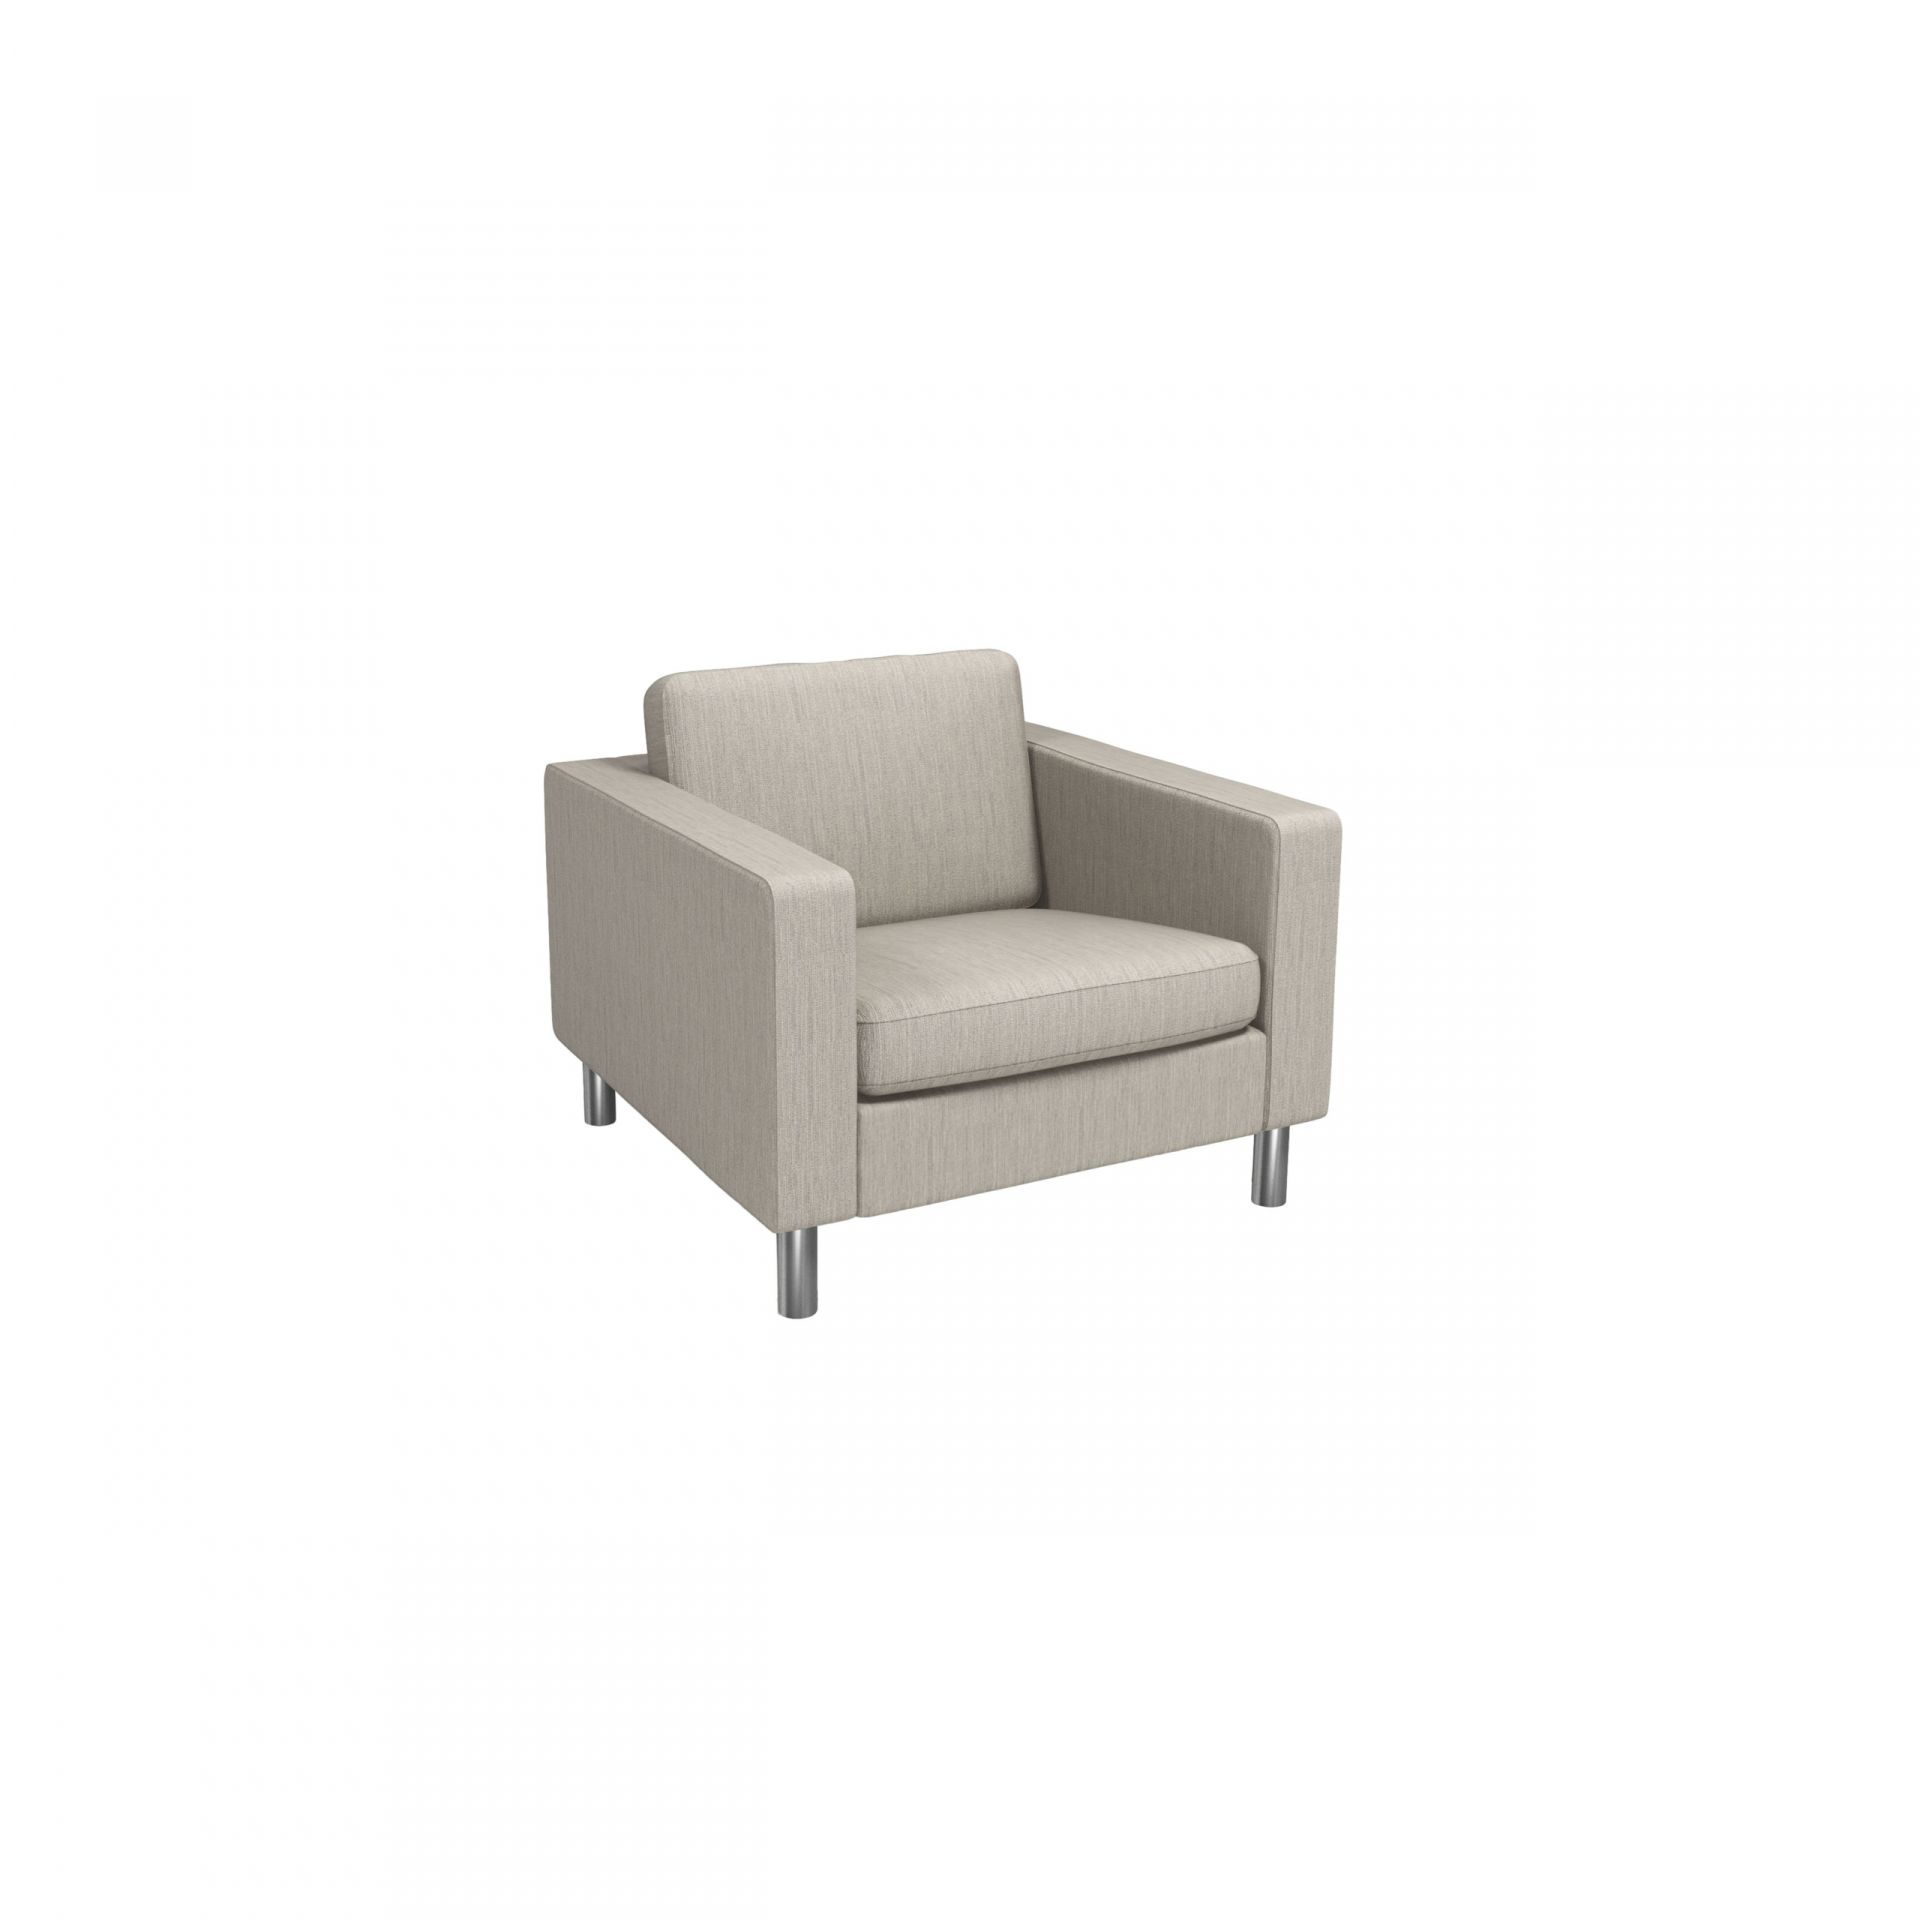 Pure Armchair product image 1